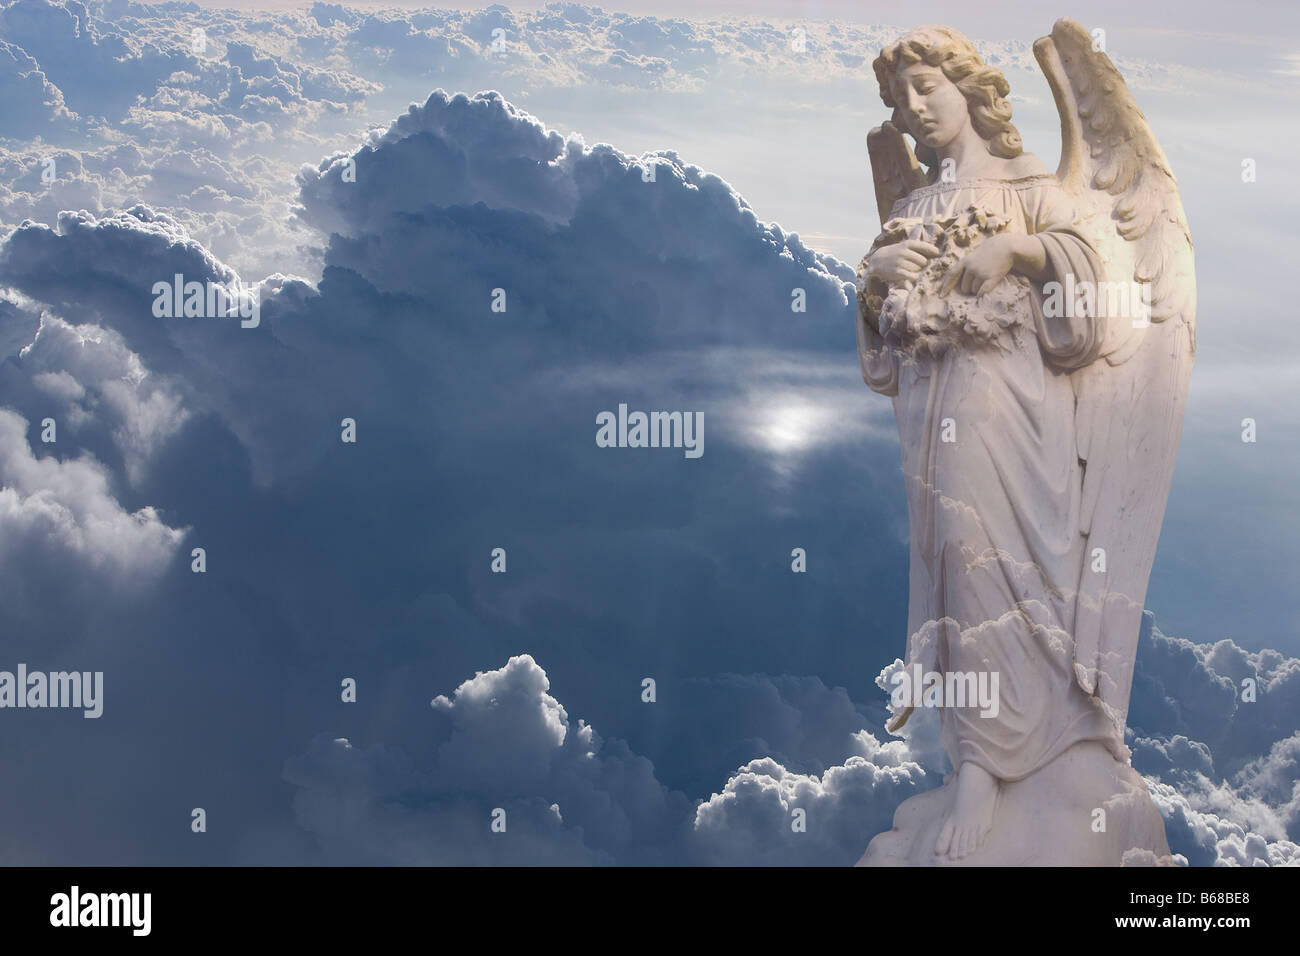 Statue of angel and aerial photo of clouds - Stock Image